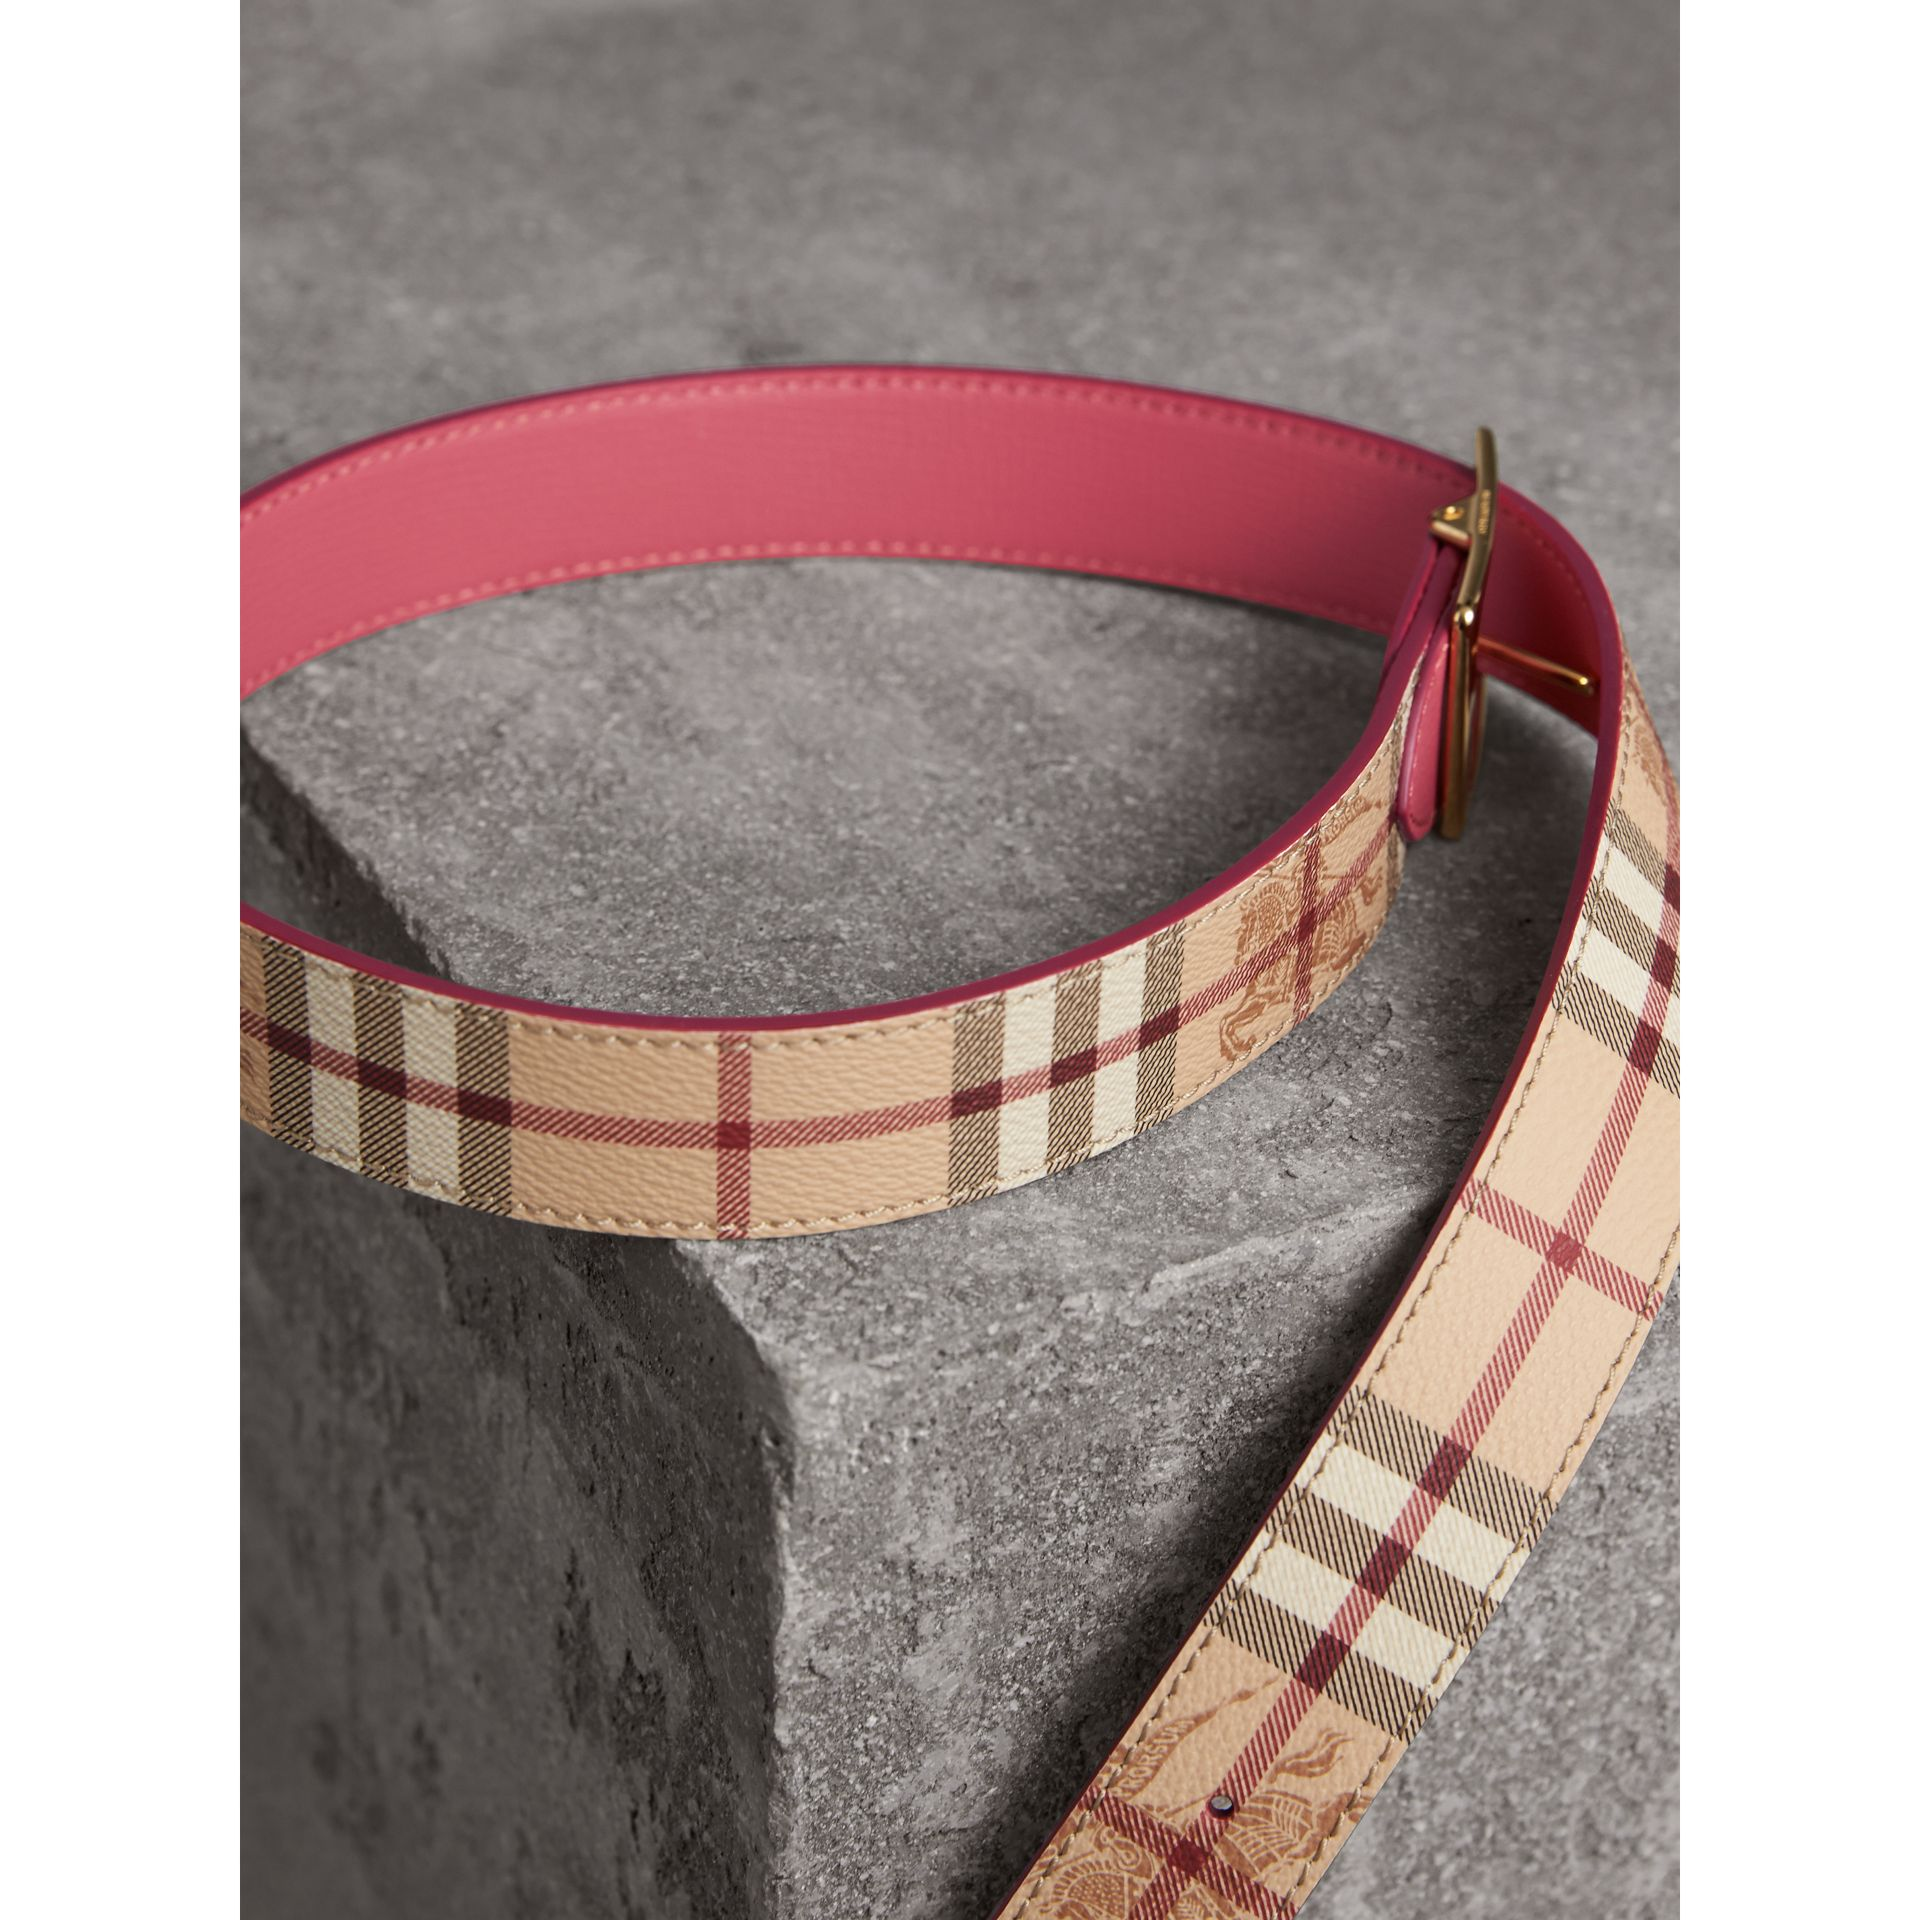 Riveted Reversible Check and Leather Belt in Plum Pink - Women | Burberry - gallery image 5